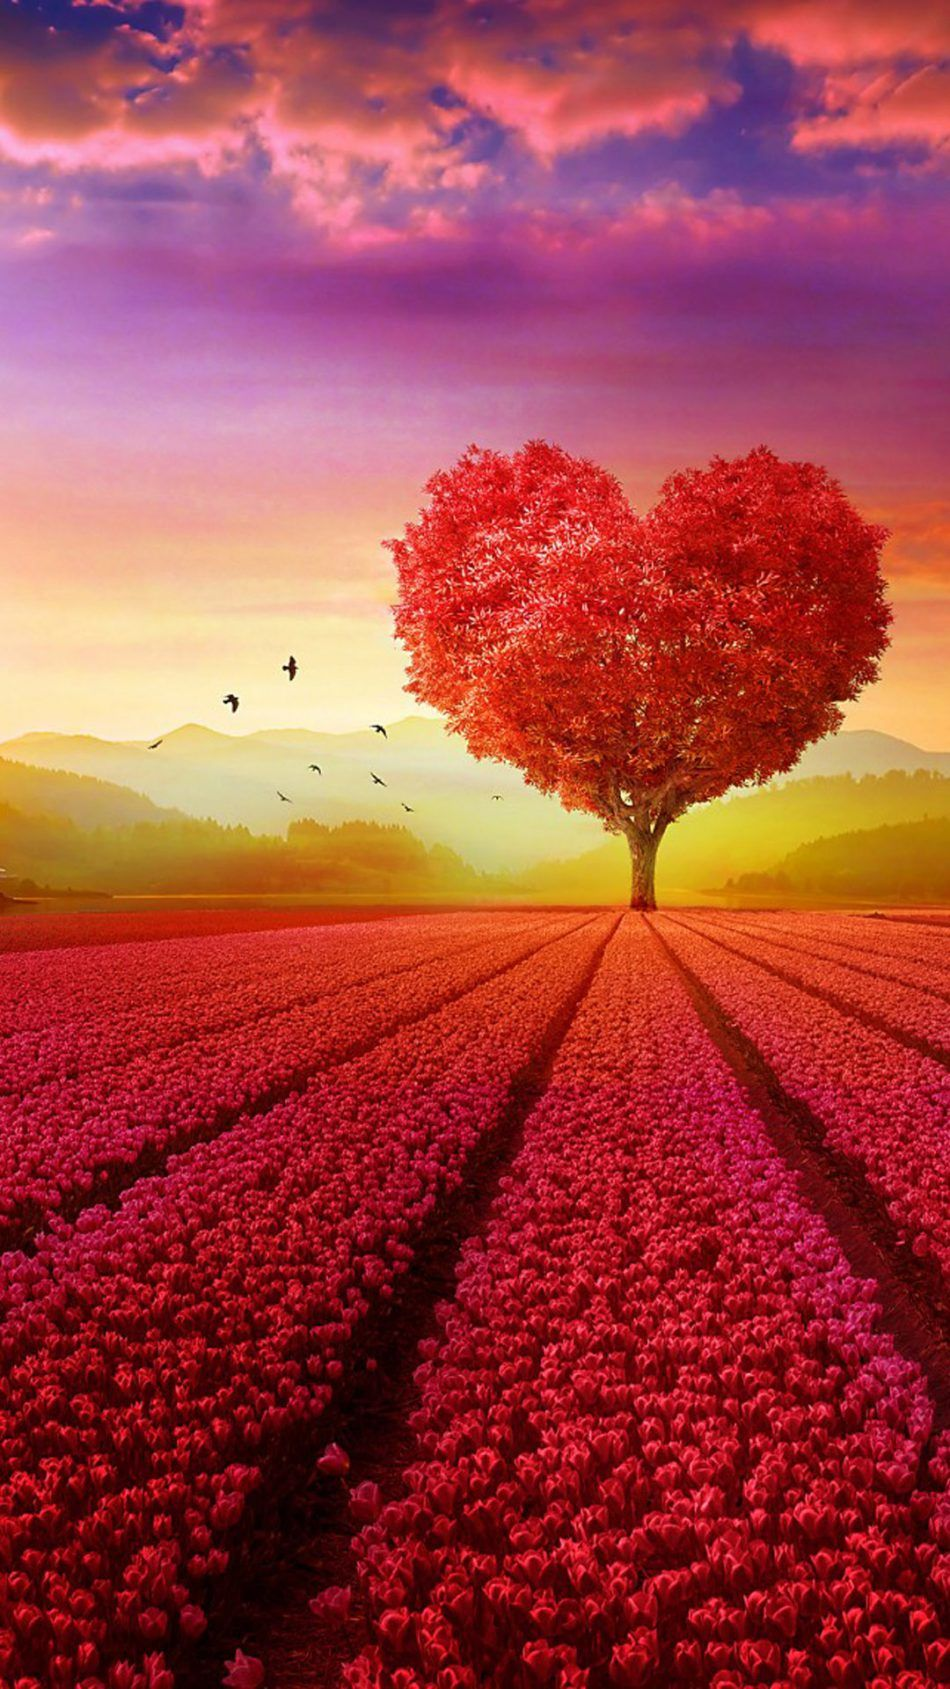 Love Heart Shape Tree Flowers 4k Ultra Hd Mobile Wallpaper Beautiful Landscape Wallpaper Tree Wallpaper Backgrounds Love Wallpapers Romantic